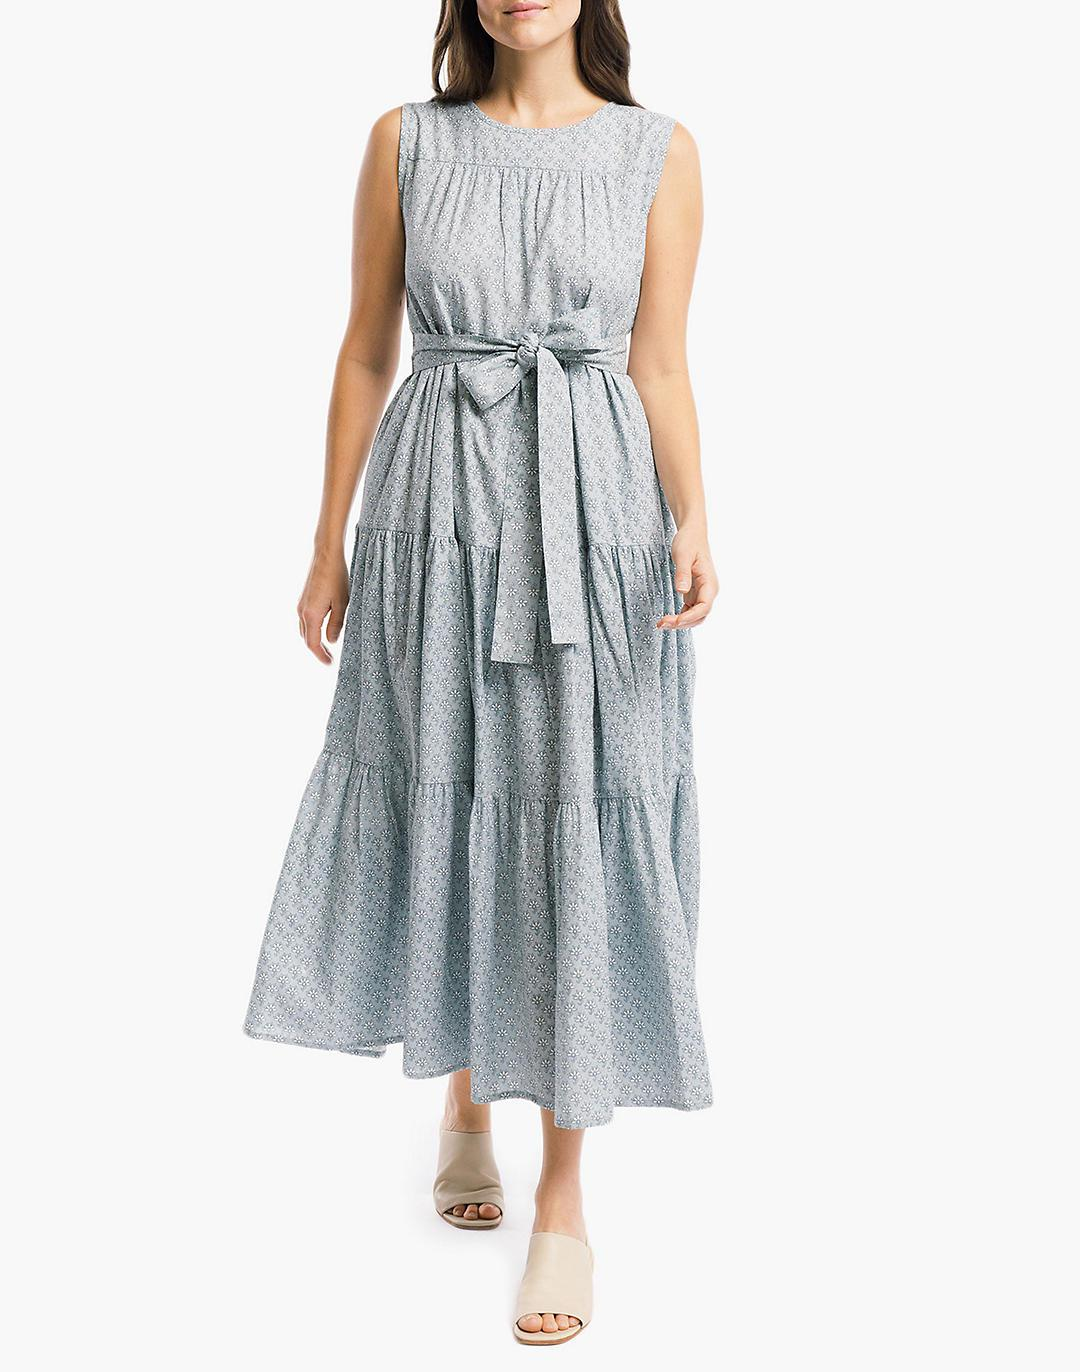 LAUDE the Label Organic Linen Tiered Maxi Dress